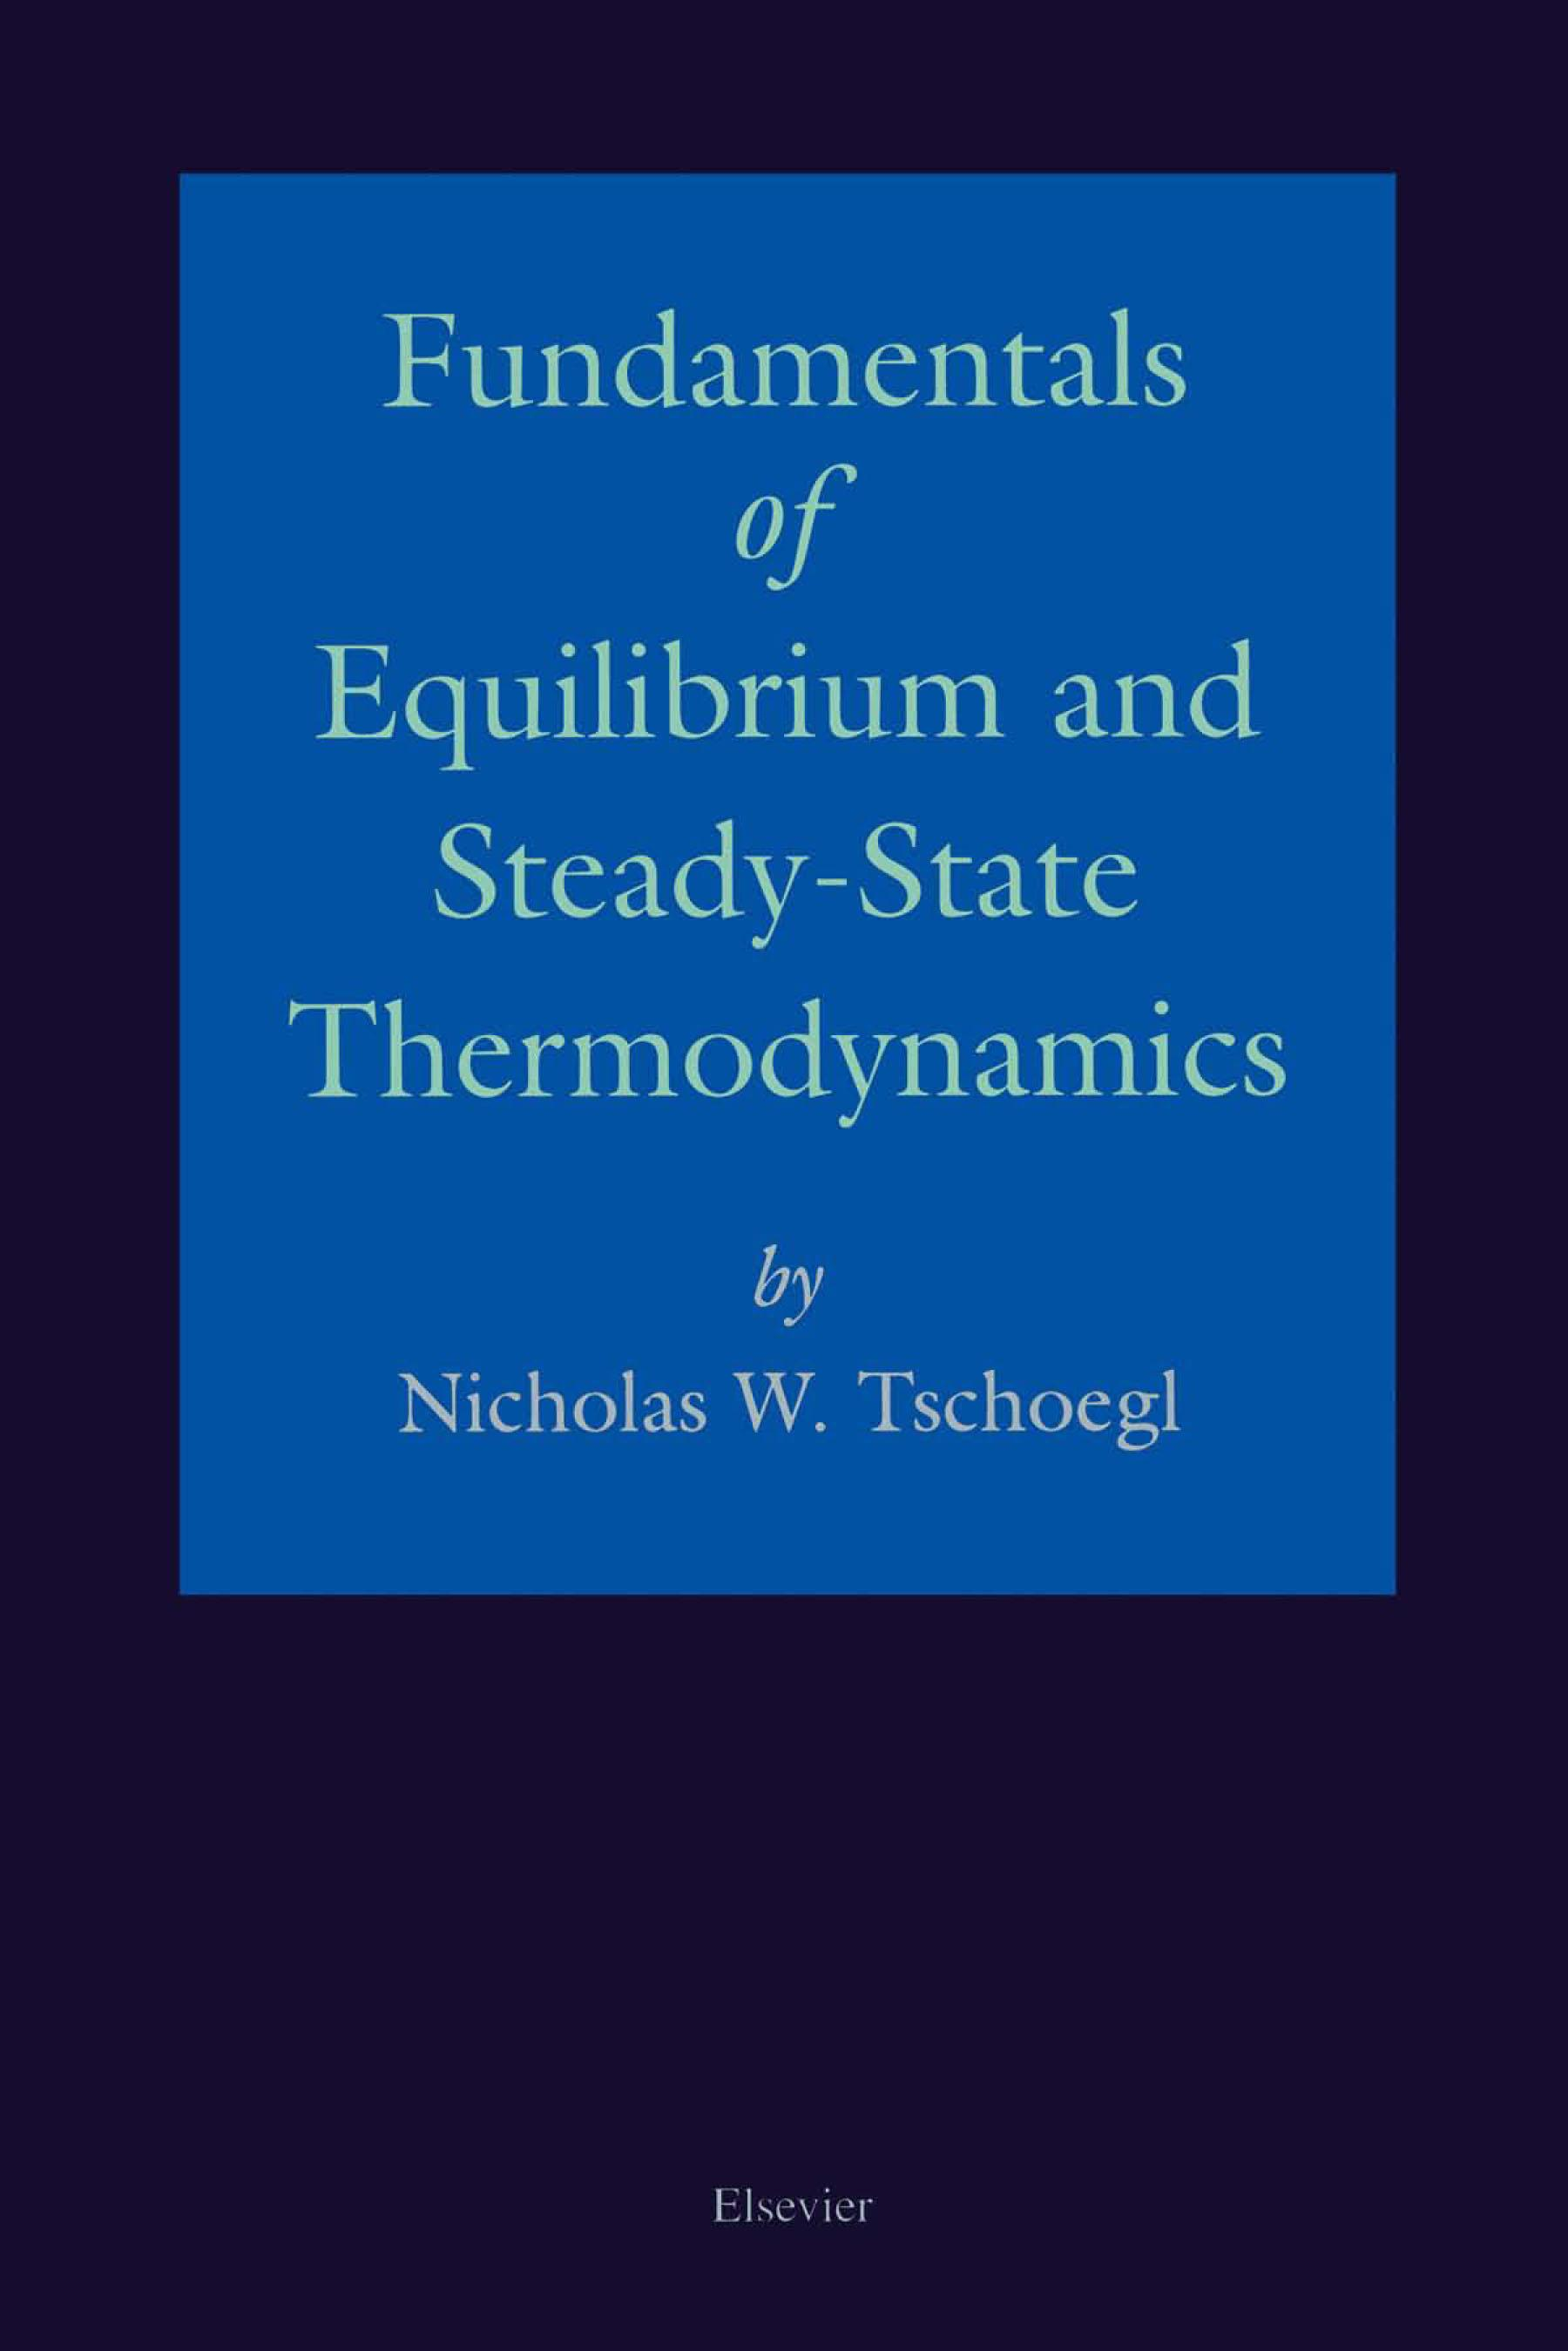 Fundamentals of Equilibrium and Steady-State Thermodynamics By: Tschoegl, N.W.